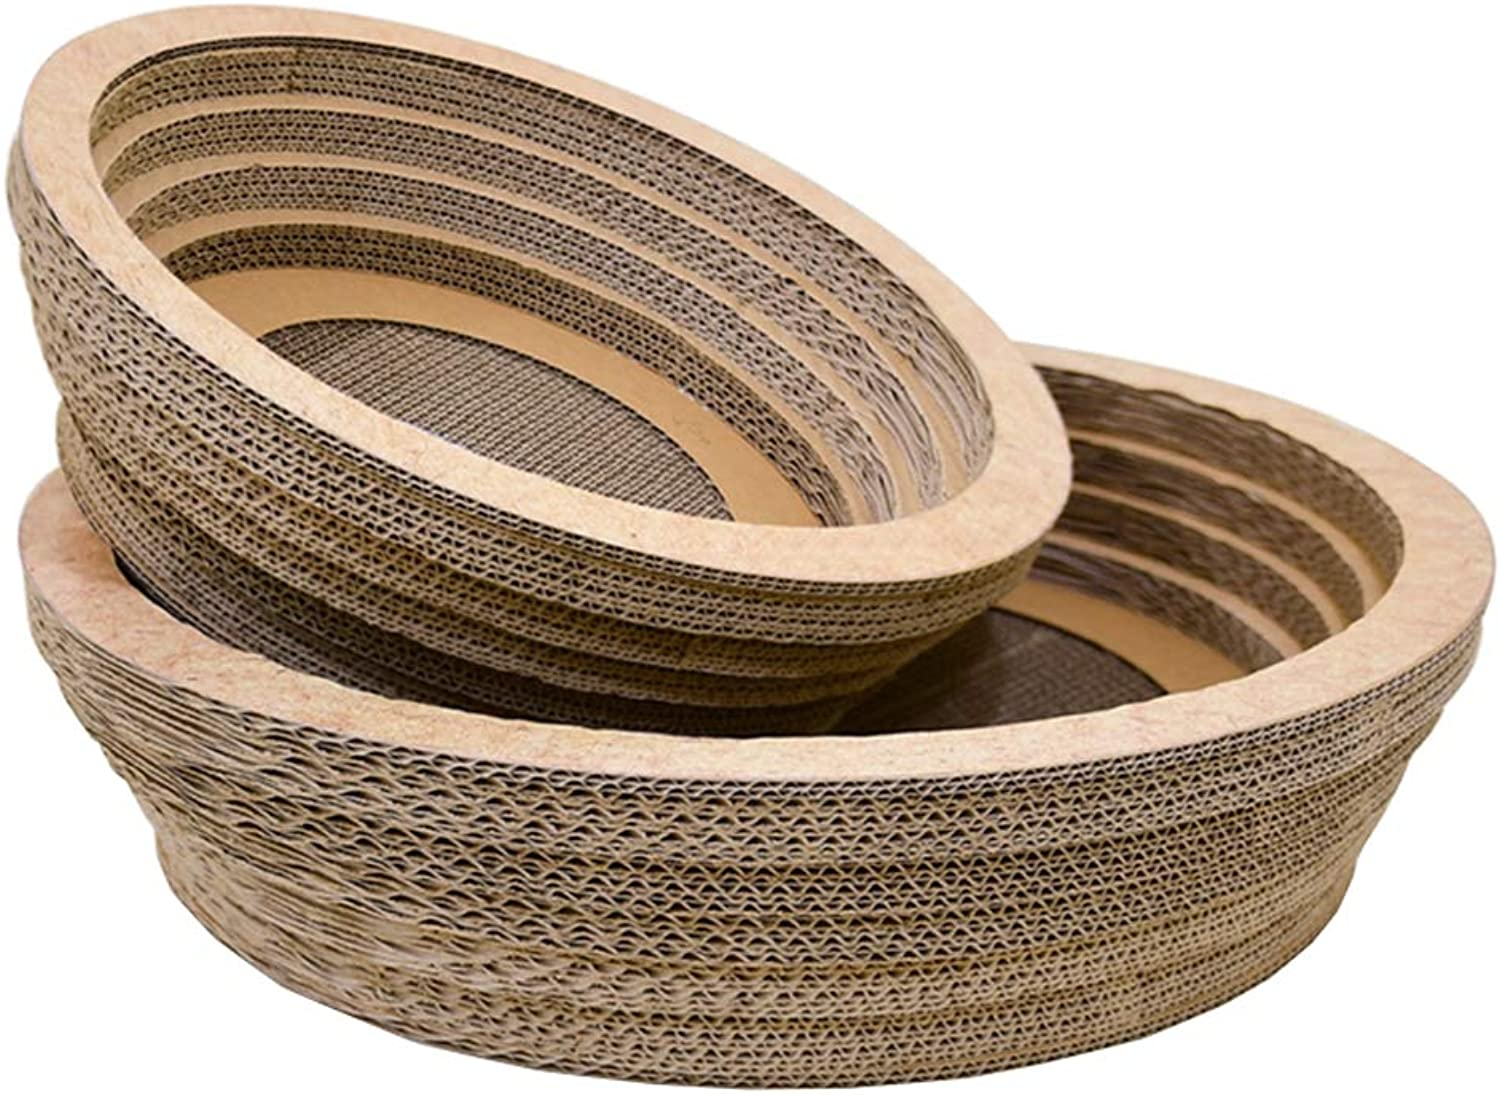 CHEN. Pet bedlarge bowlshaped cat scratch board corrugated paper cat bed claw claw plate claw claw toy pet supplies,Natural,S